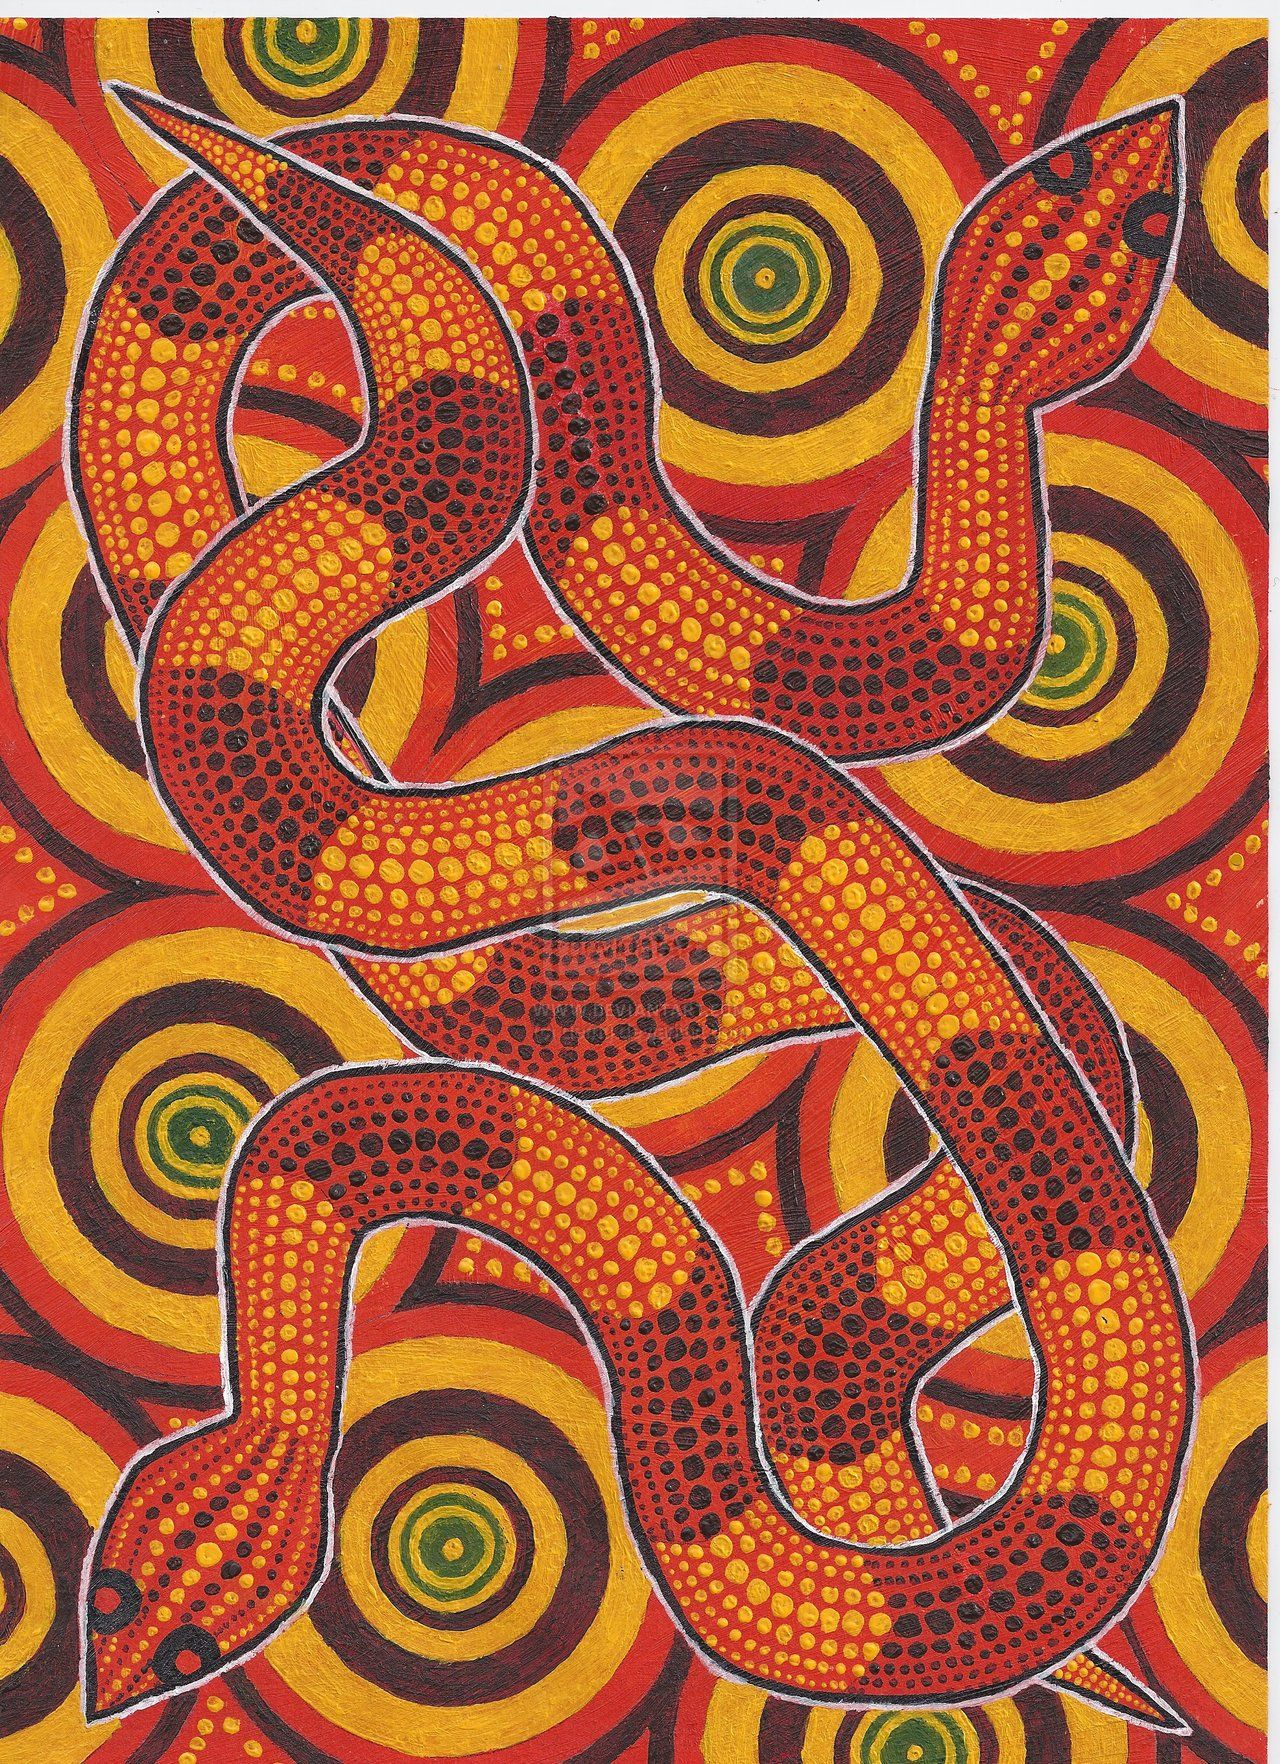 Aboriginal Snakes By Derng Deviantart Com On Deviantart